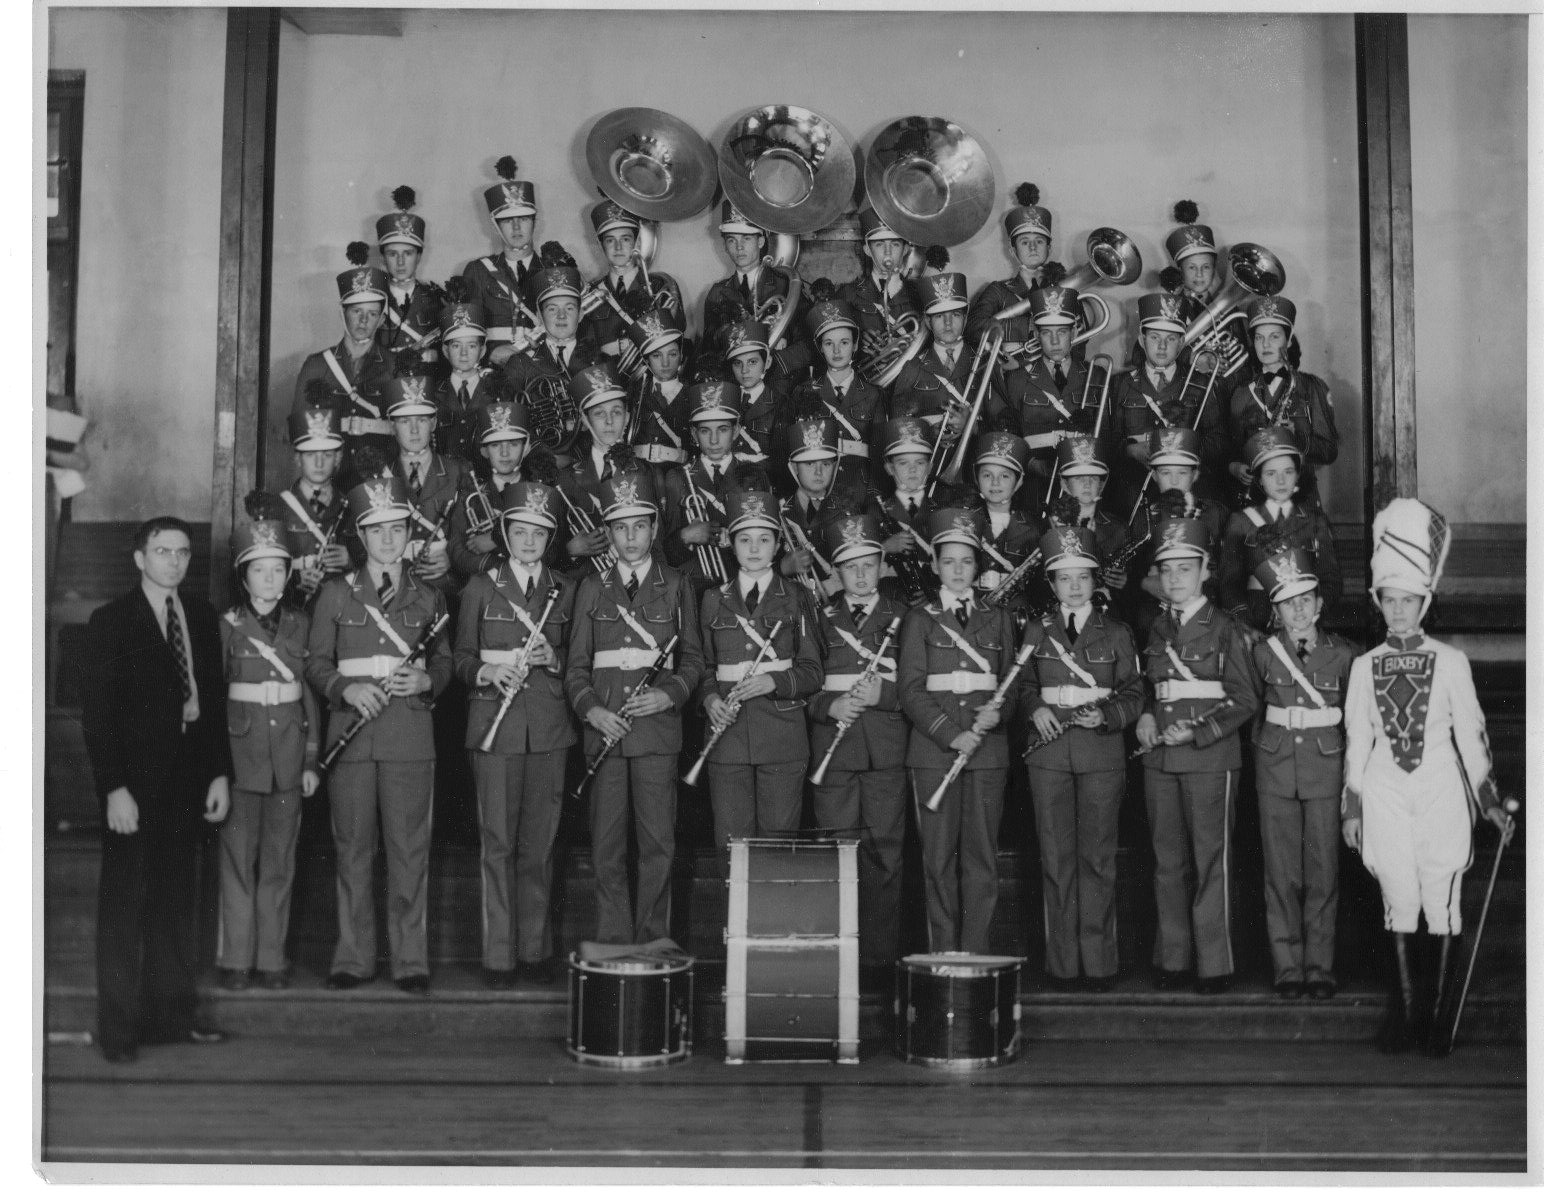 uncle hugo - bixby band - 1930s - a